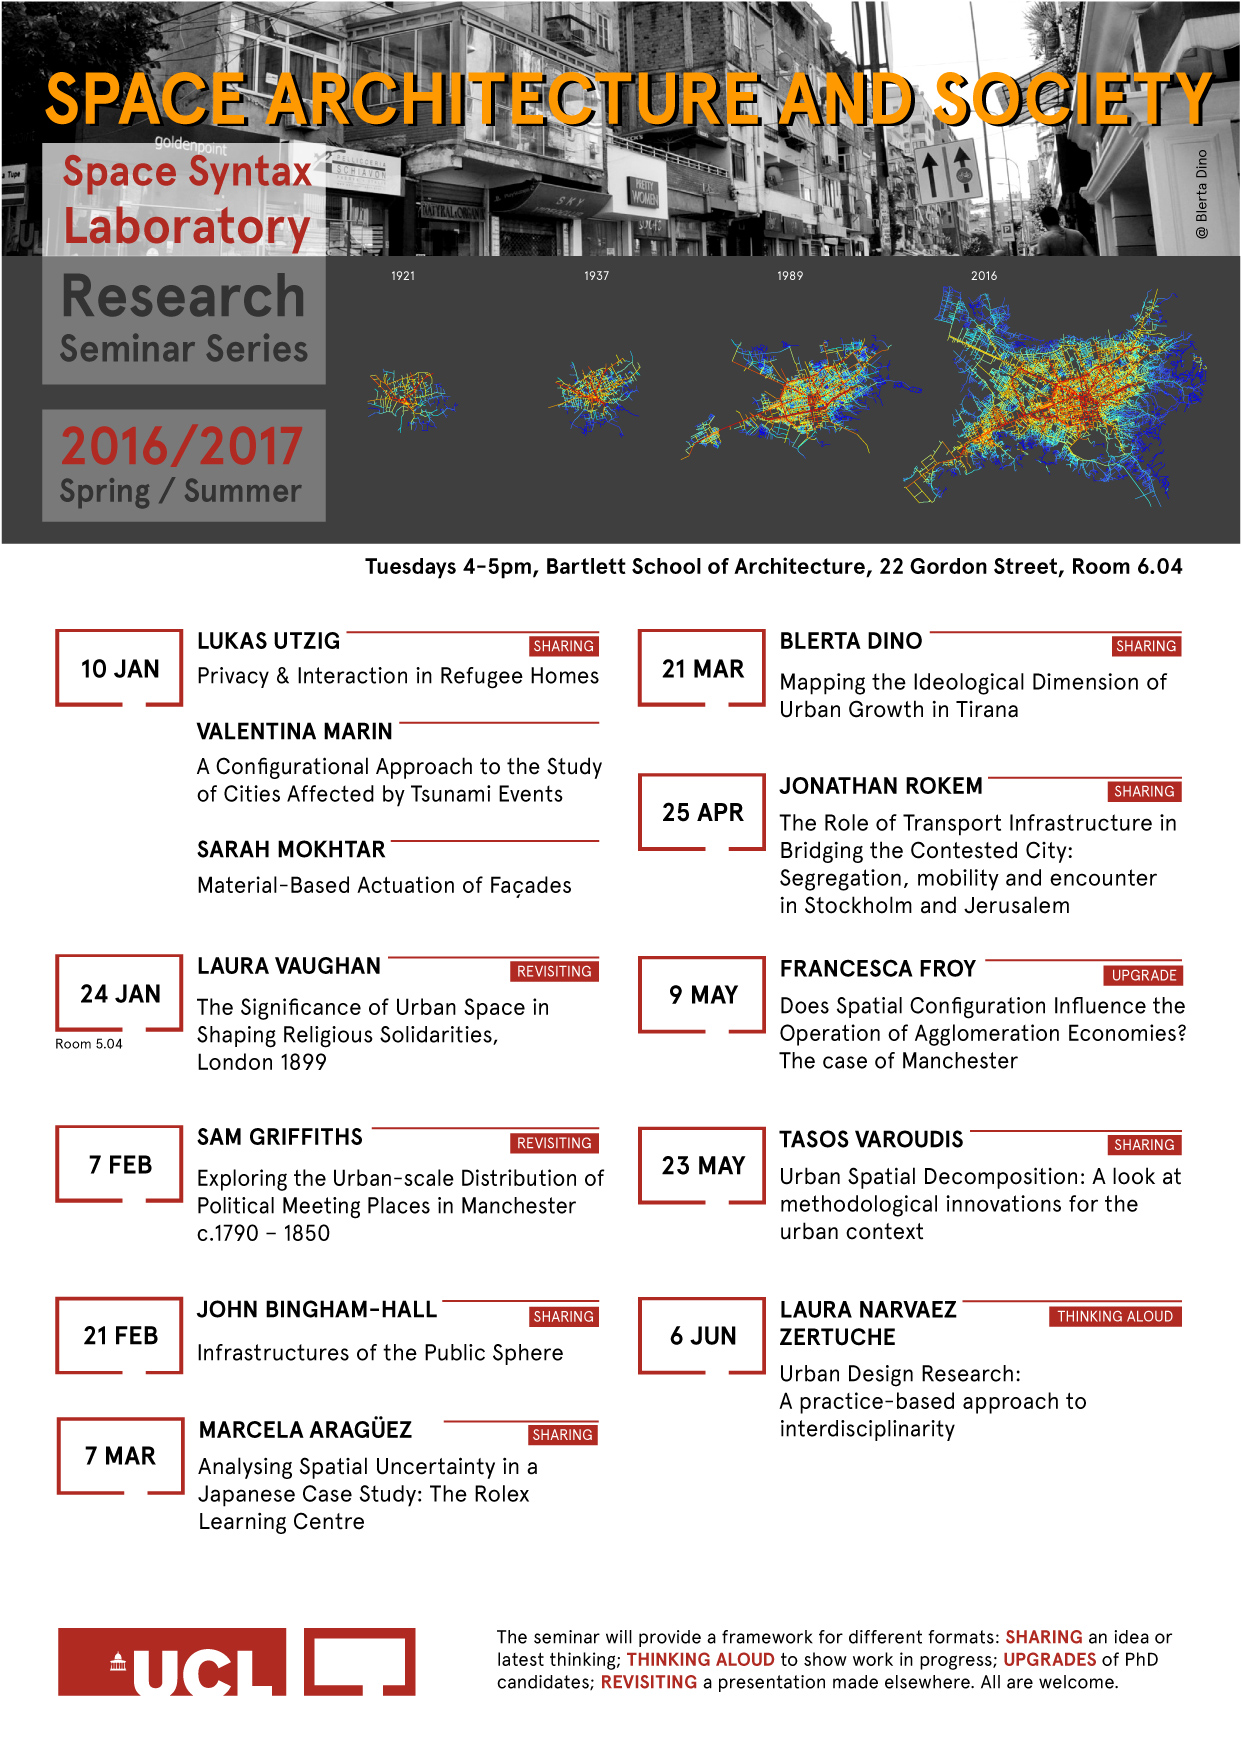 Space Syntax Laboratory Research Seminar Series